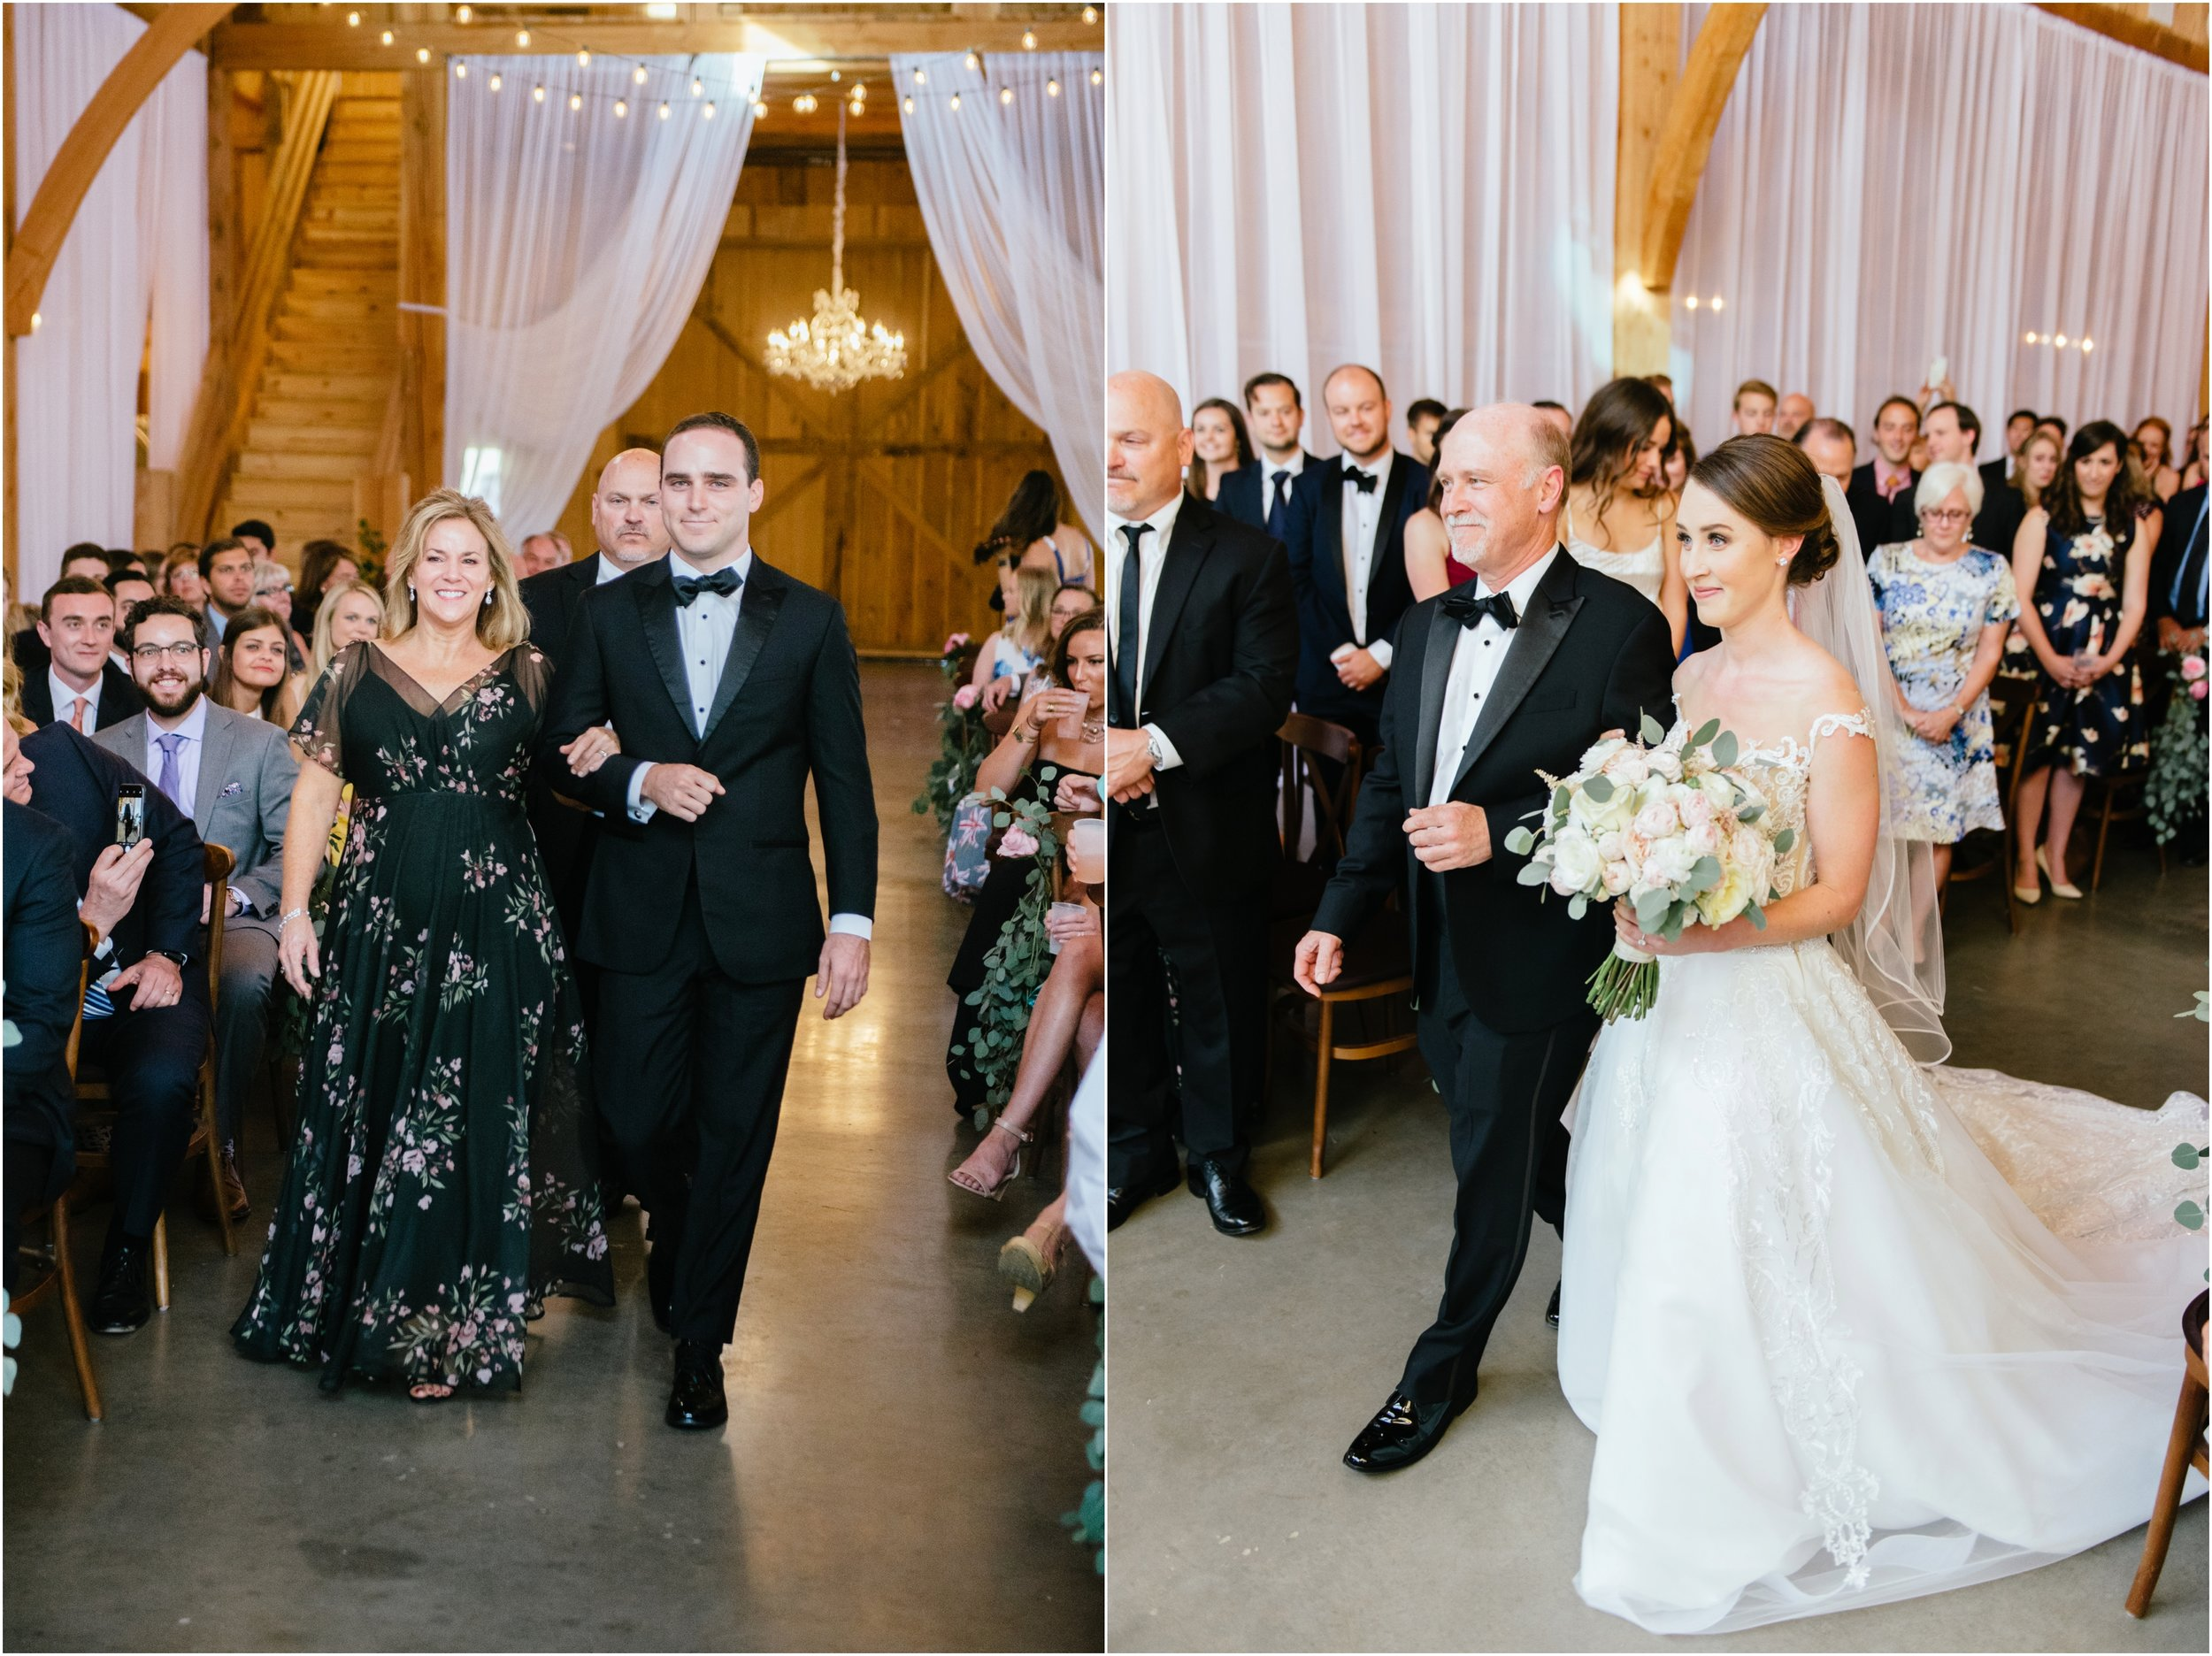 dallasweddingphotographer_fortworthweddingphotographer_texasweddingphotographer_mattandjulieweddings_whiterocklakewedding_KayleighClay_0019.jpg